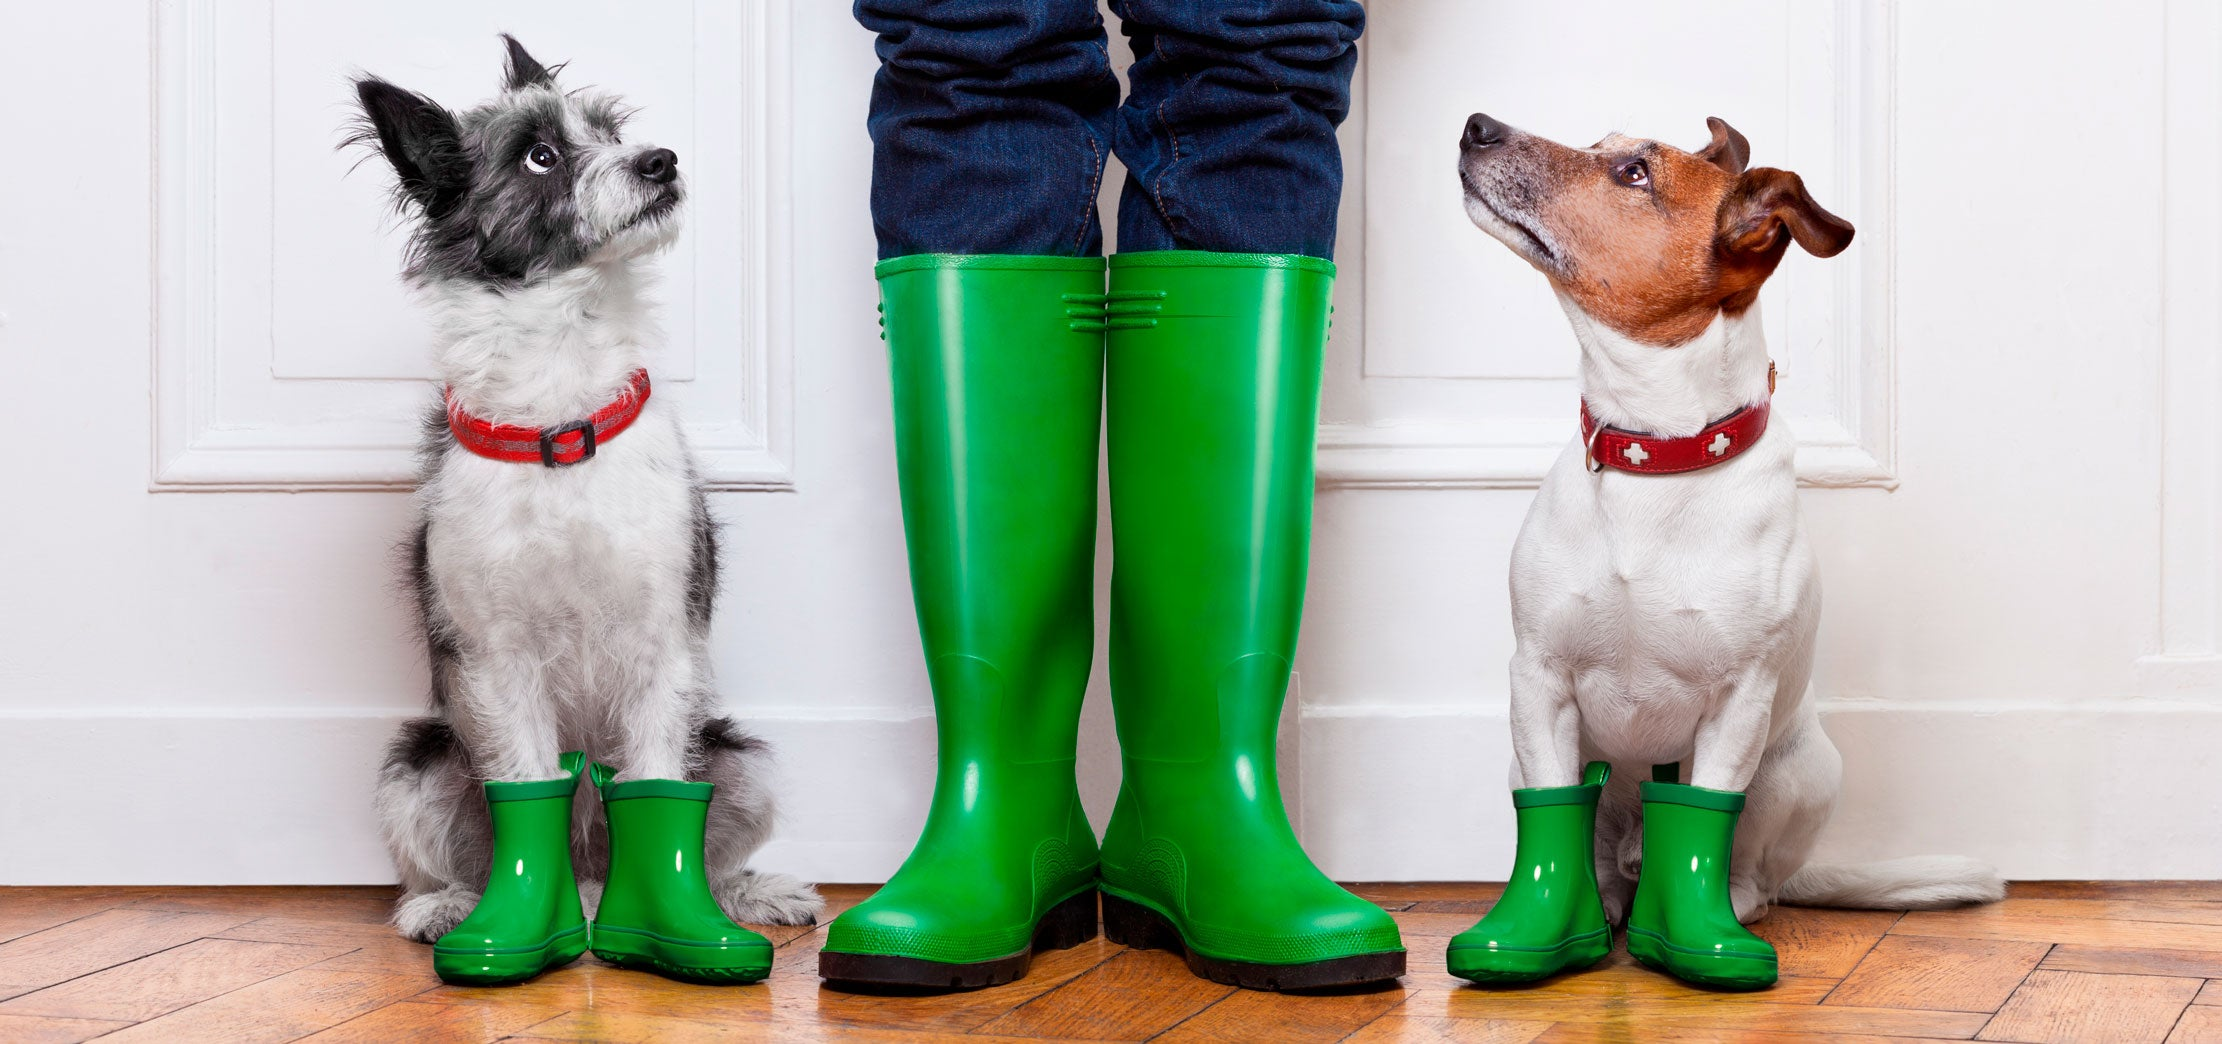 urban dogs with green rubber boots